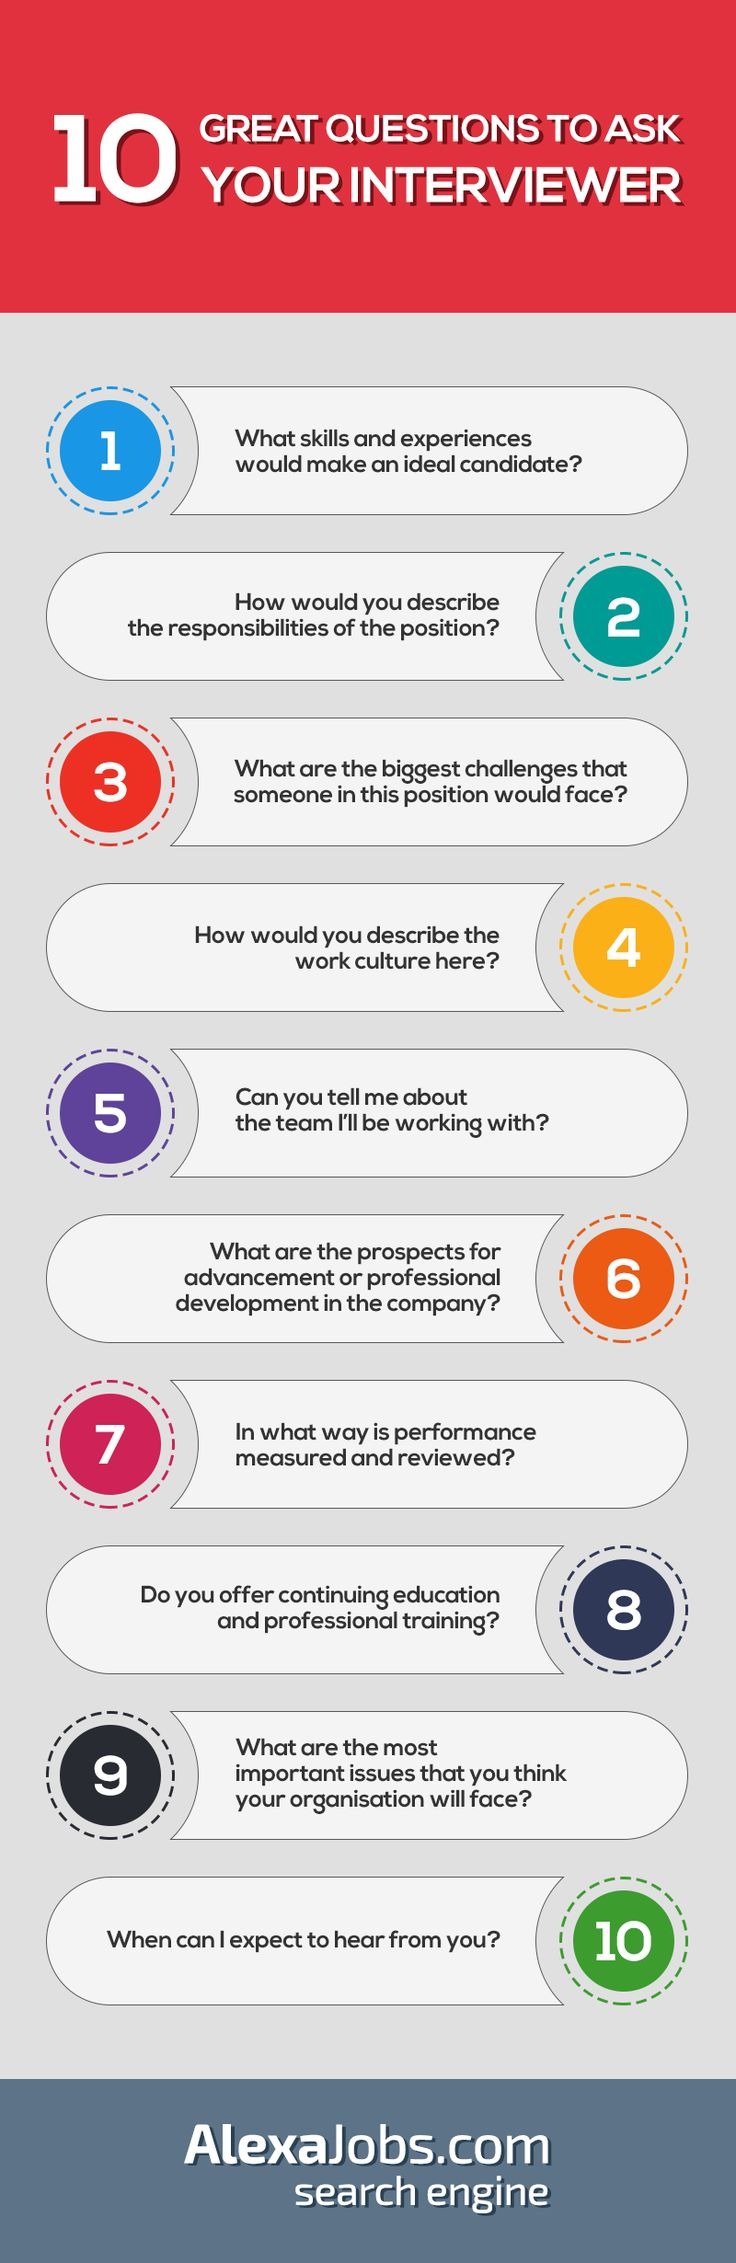 ideas about job interview tips job interview infographic often job interviews can feel like an interrogation but they re meant to be a conversation between you and a potential employer